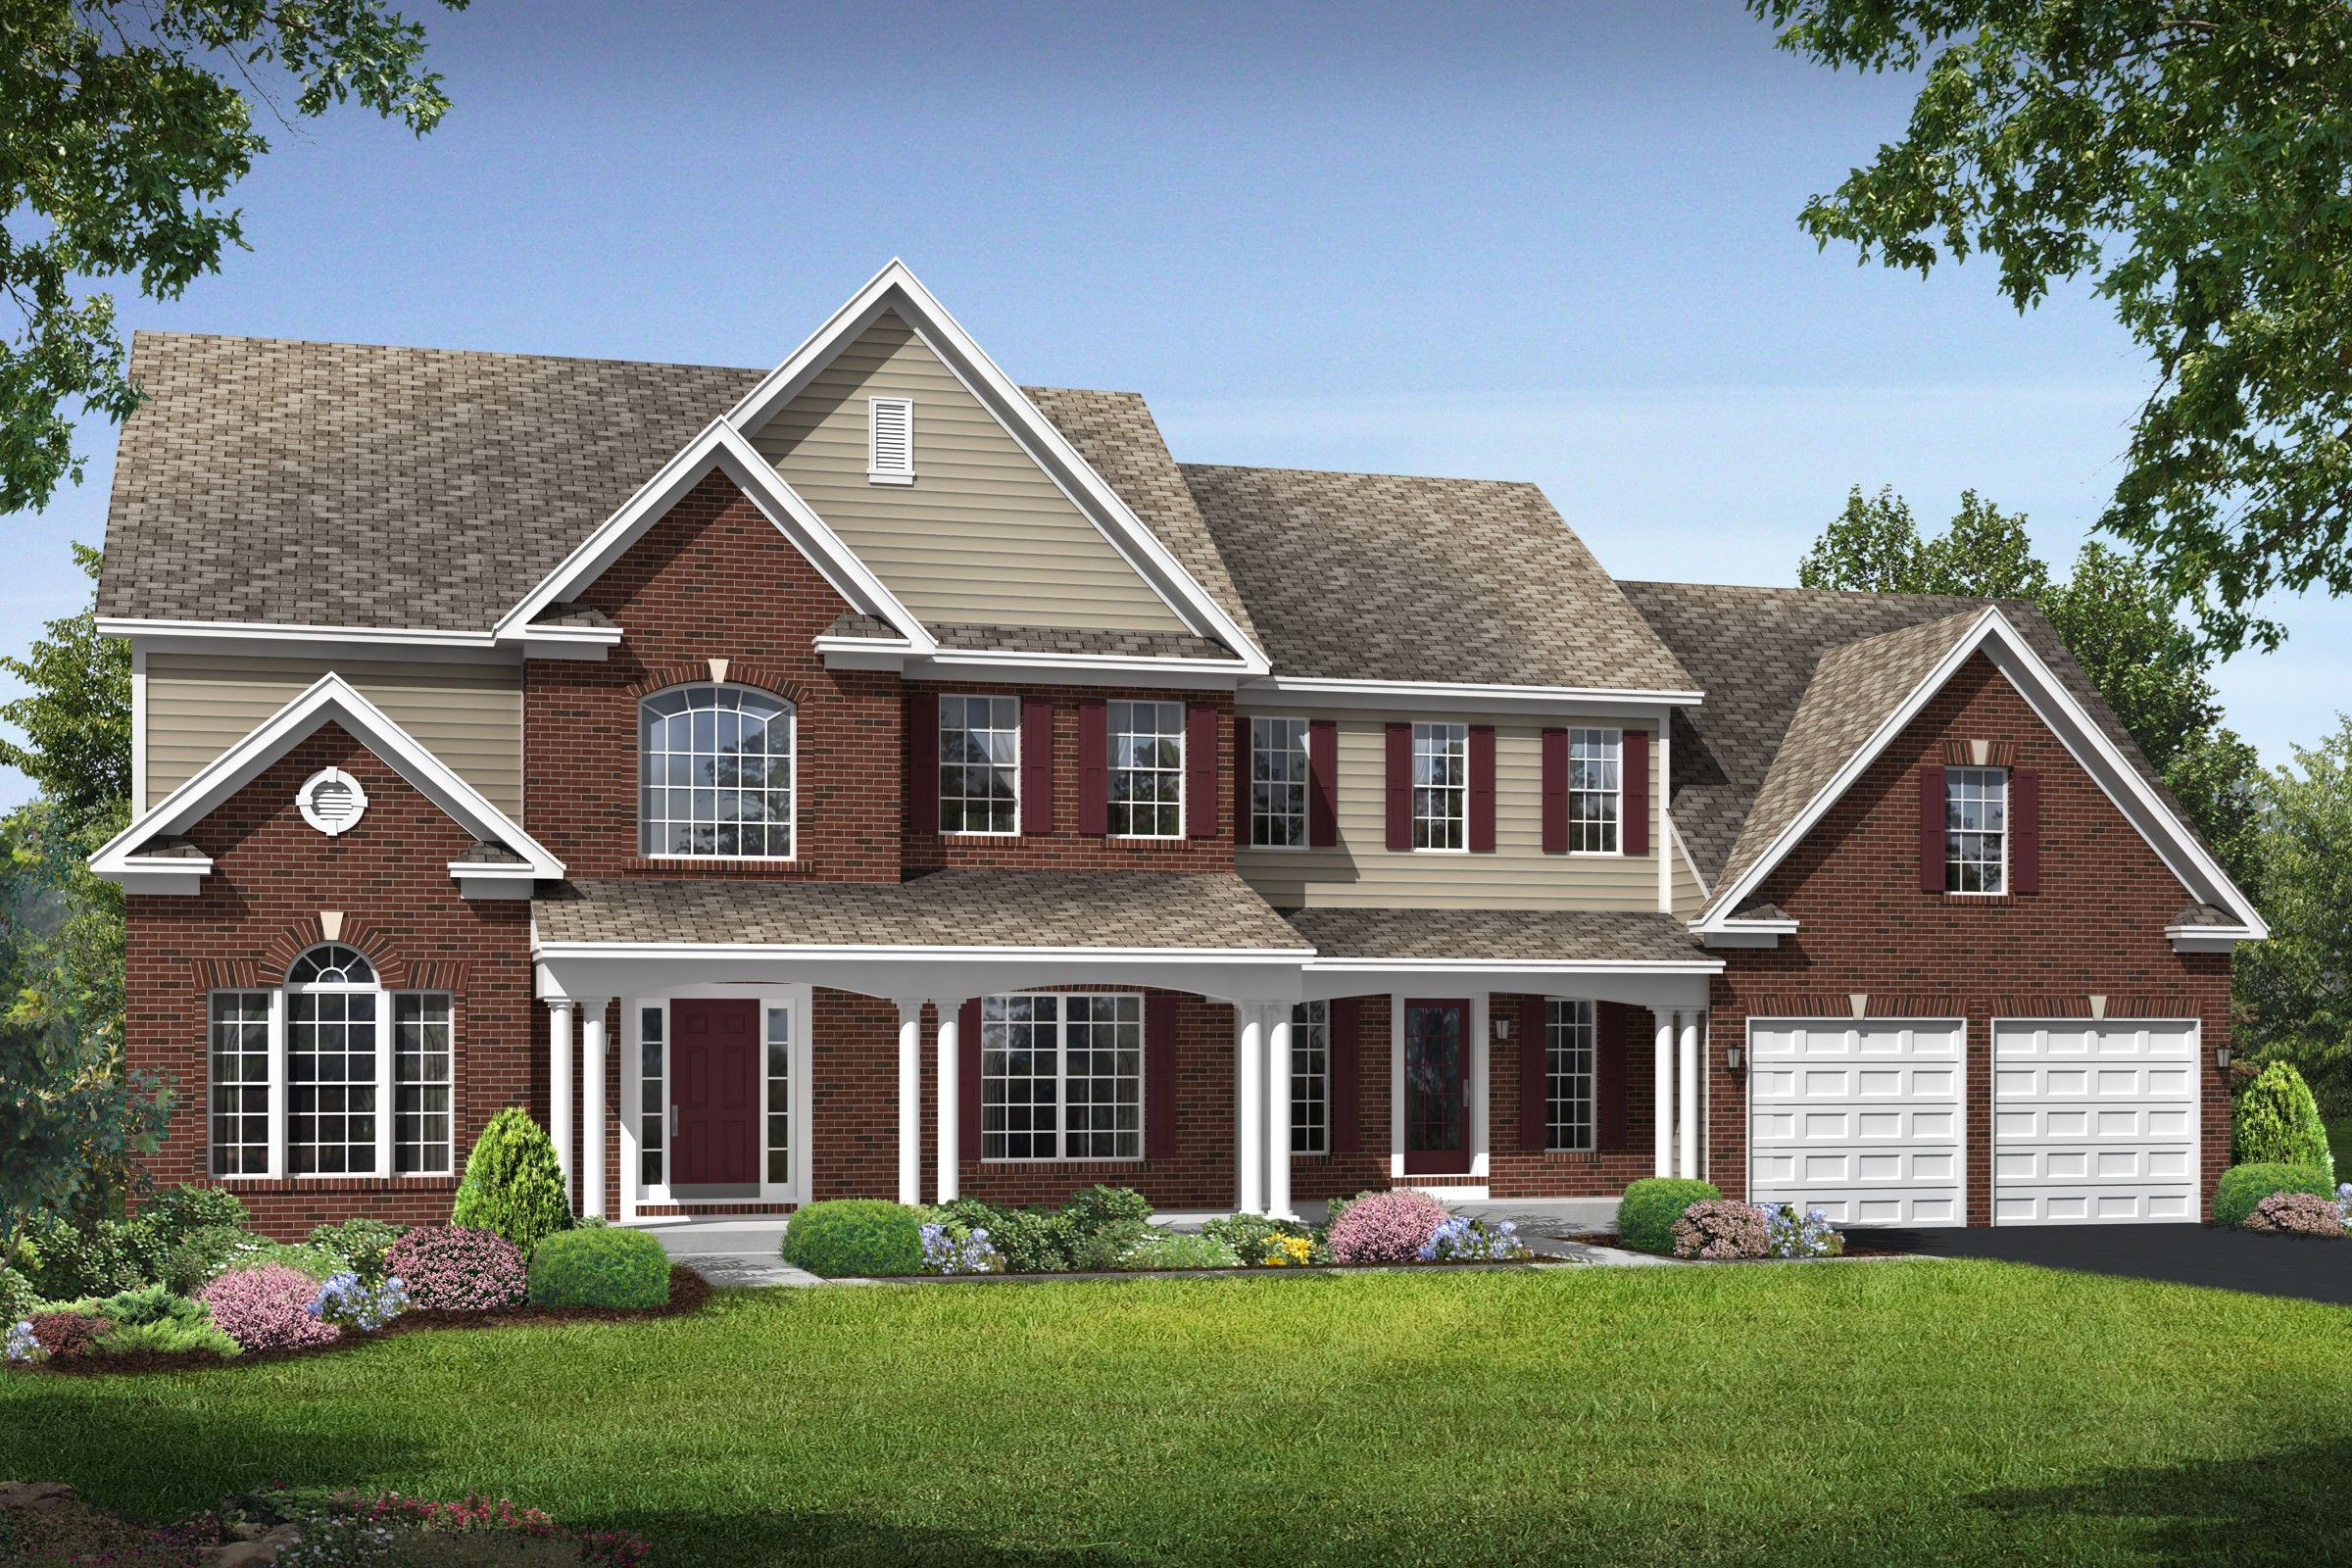 Single Family for Active at The Reserves At Leeland Station - Wisconsin 120 Perth Drive Fredericksburg, Virginia 22405 United States